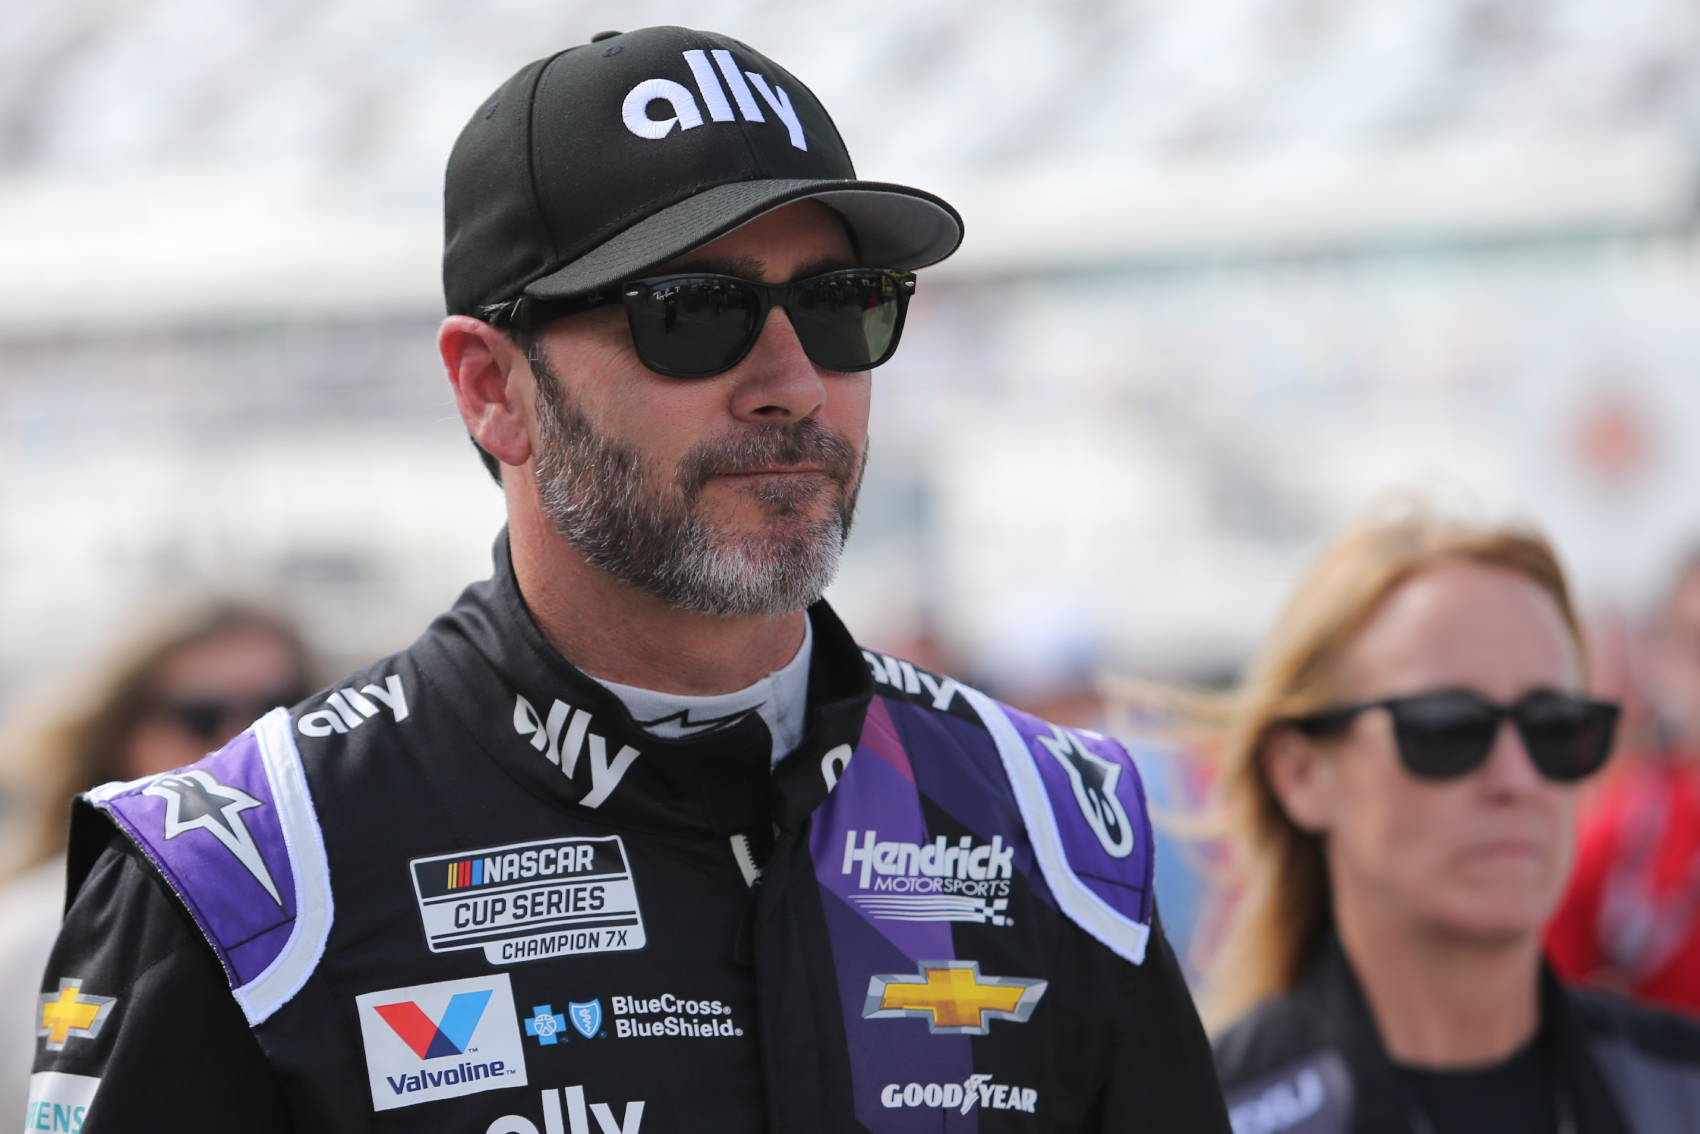 Jimmie Johnson had a legendary NASCAR career. However, he recently made a big announcement about his new IndyCar series career.